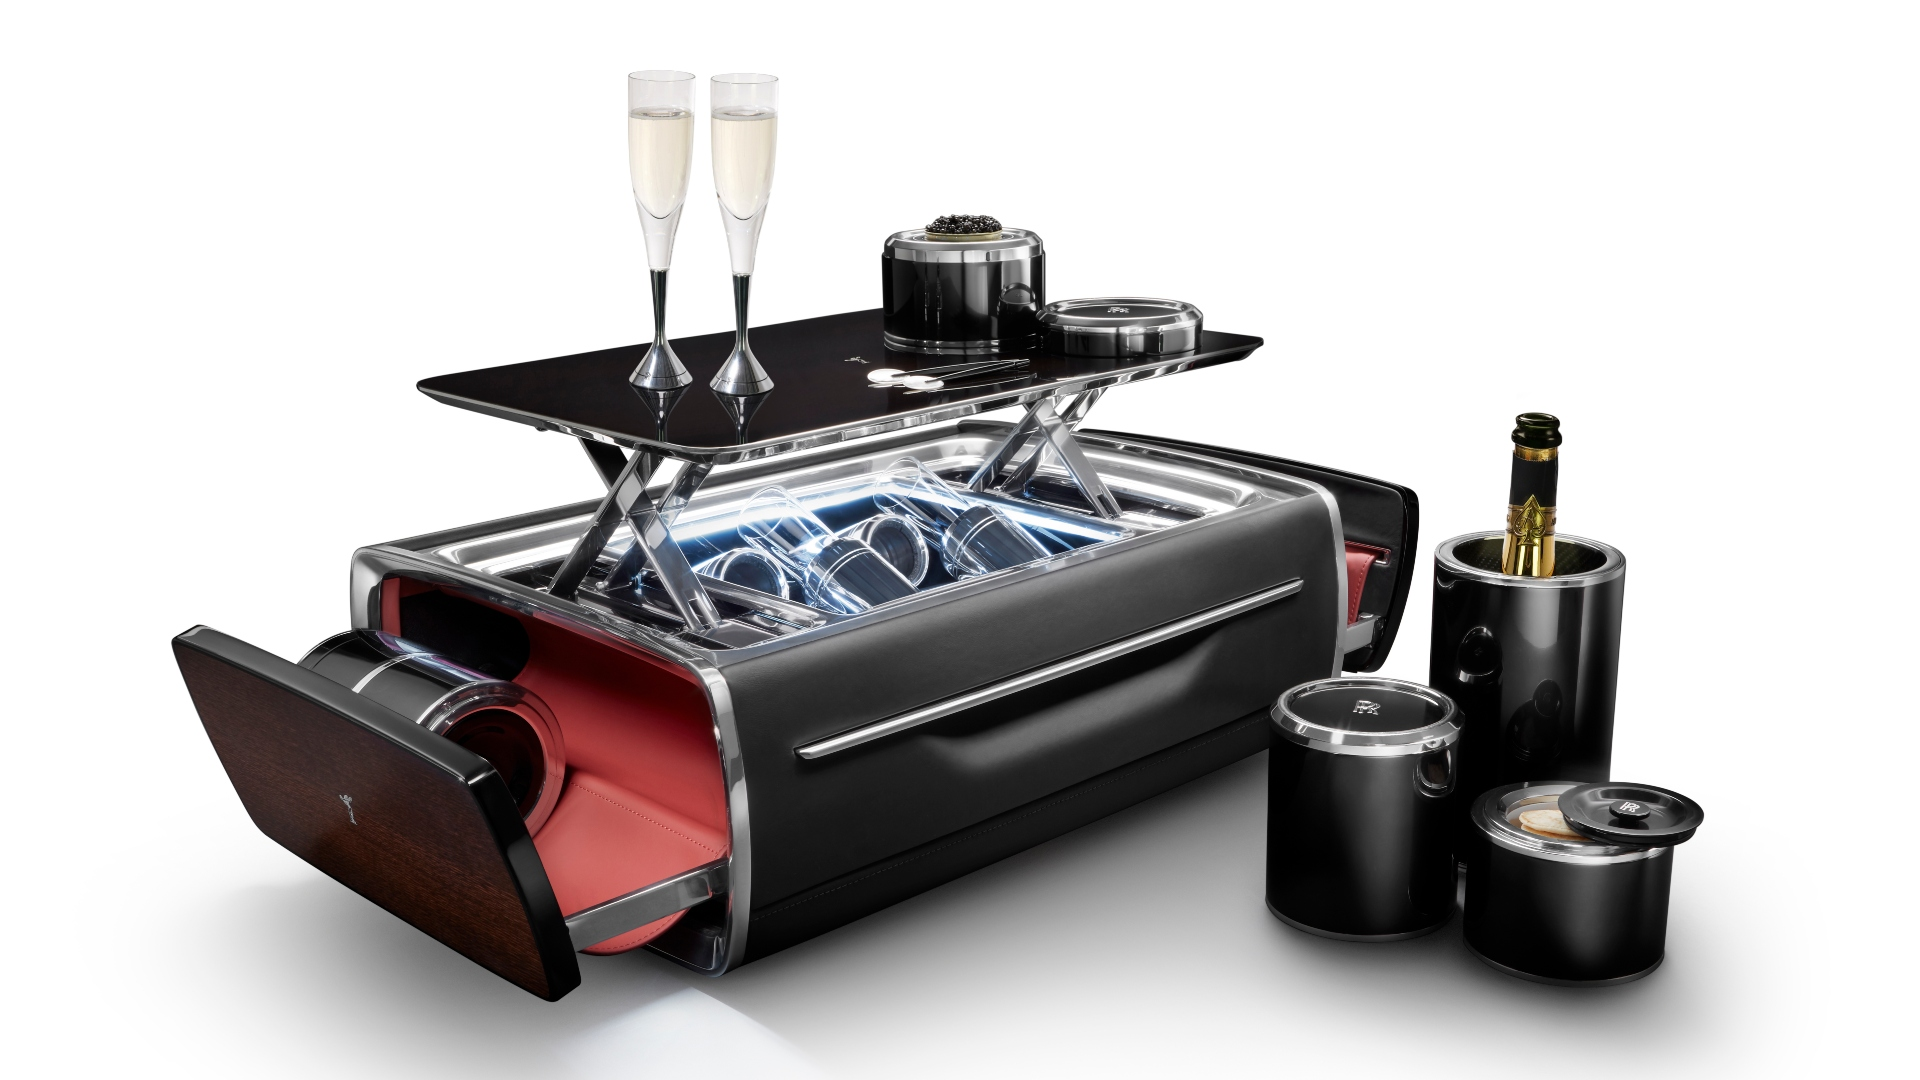 The Rolls-Royce Champagne Chest